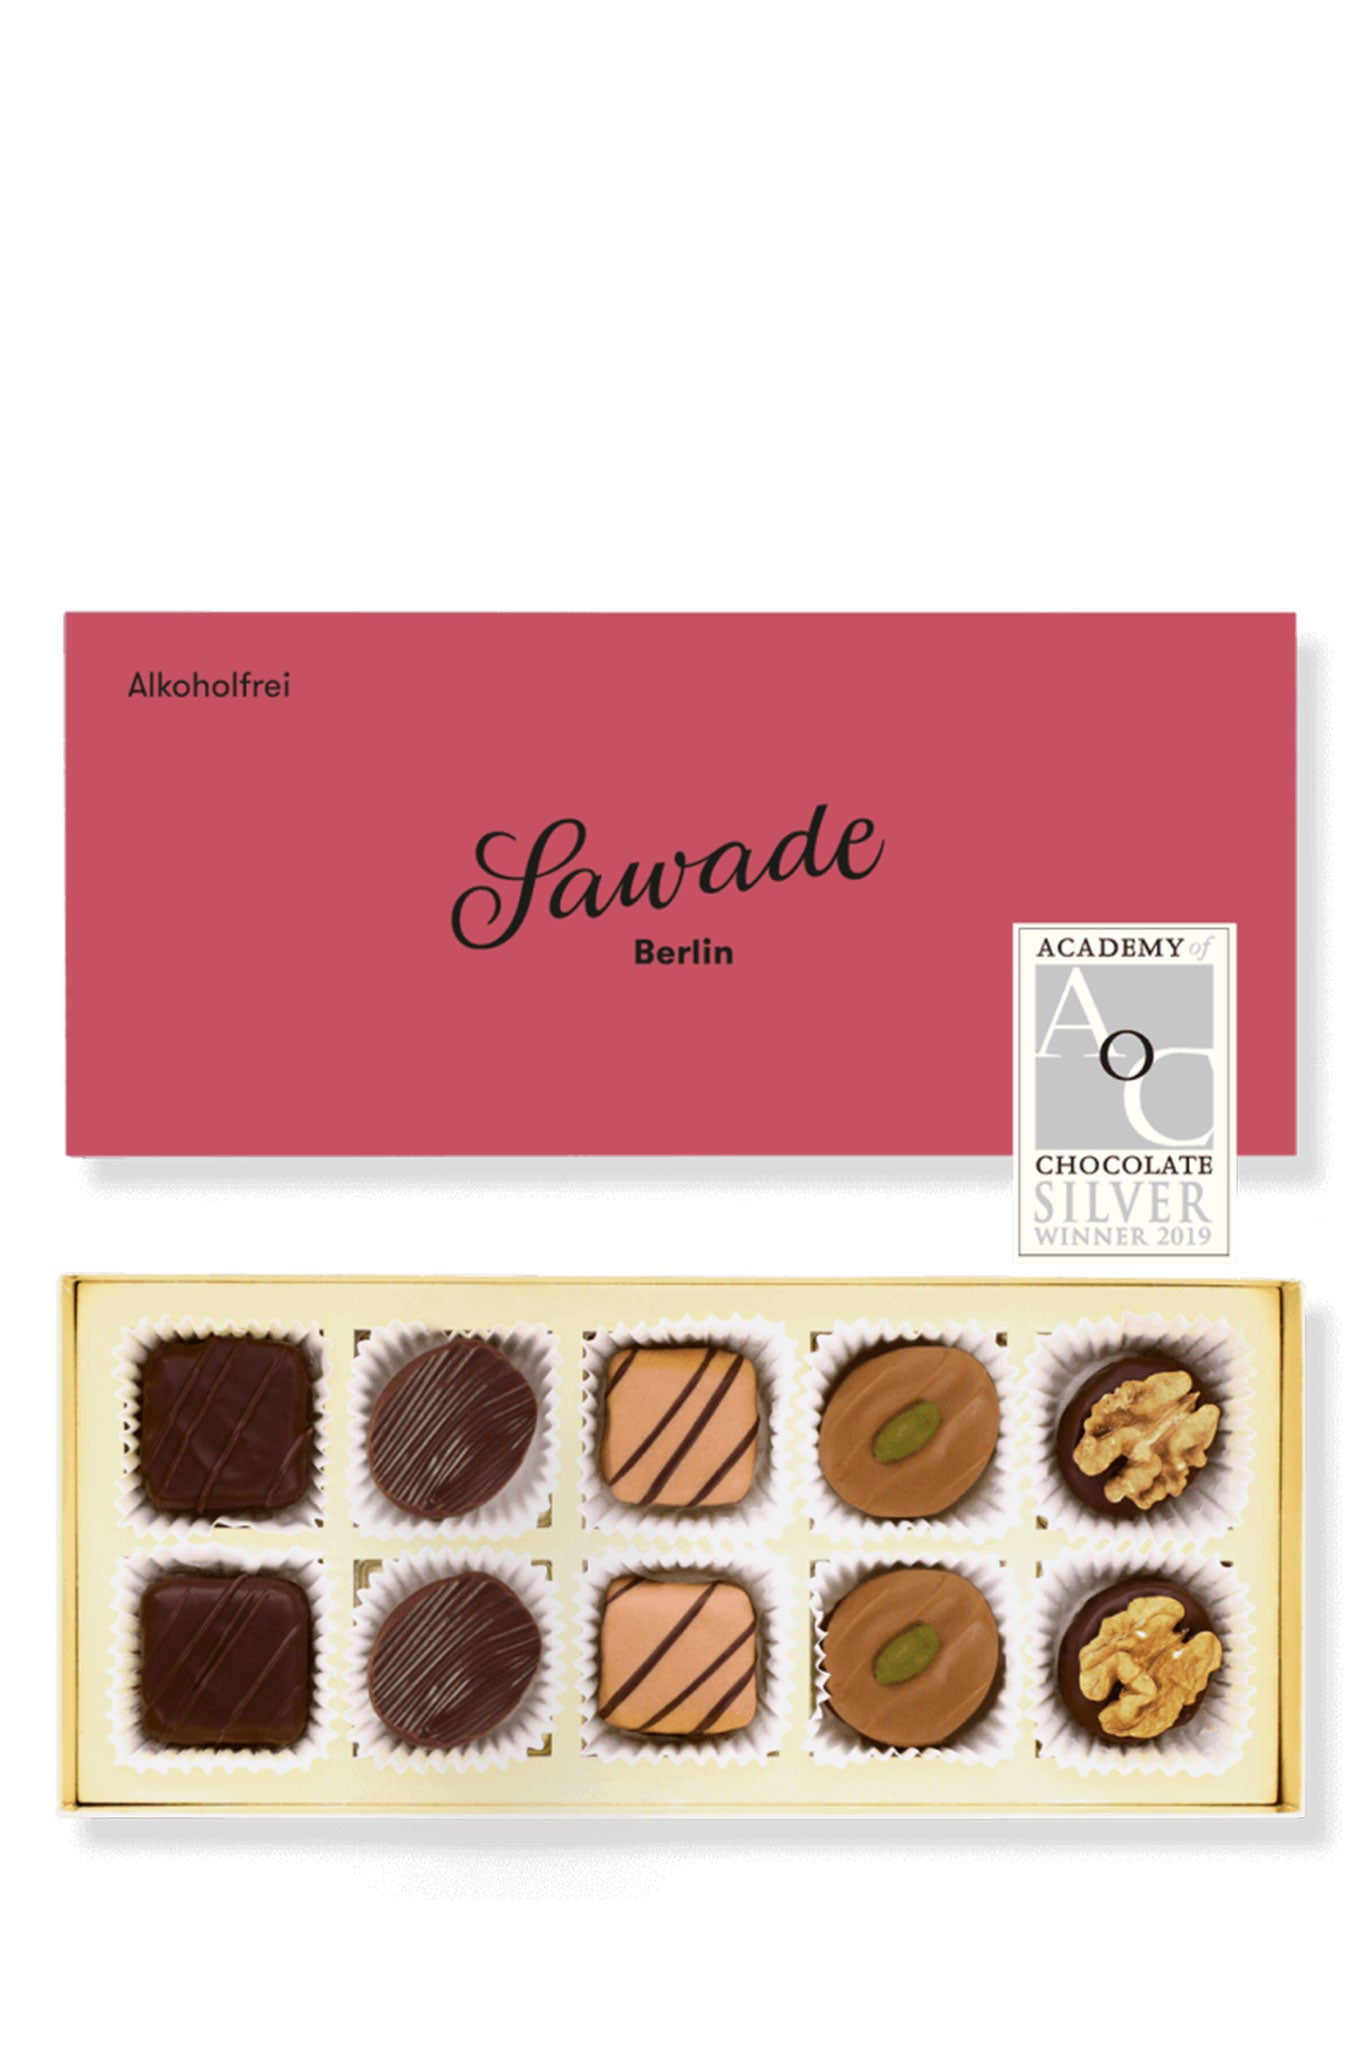 Sawade - Big Mixed Praline Chocolate Box